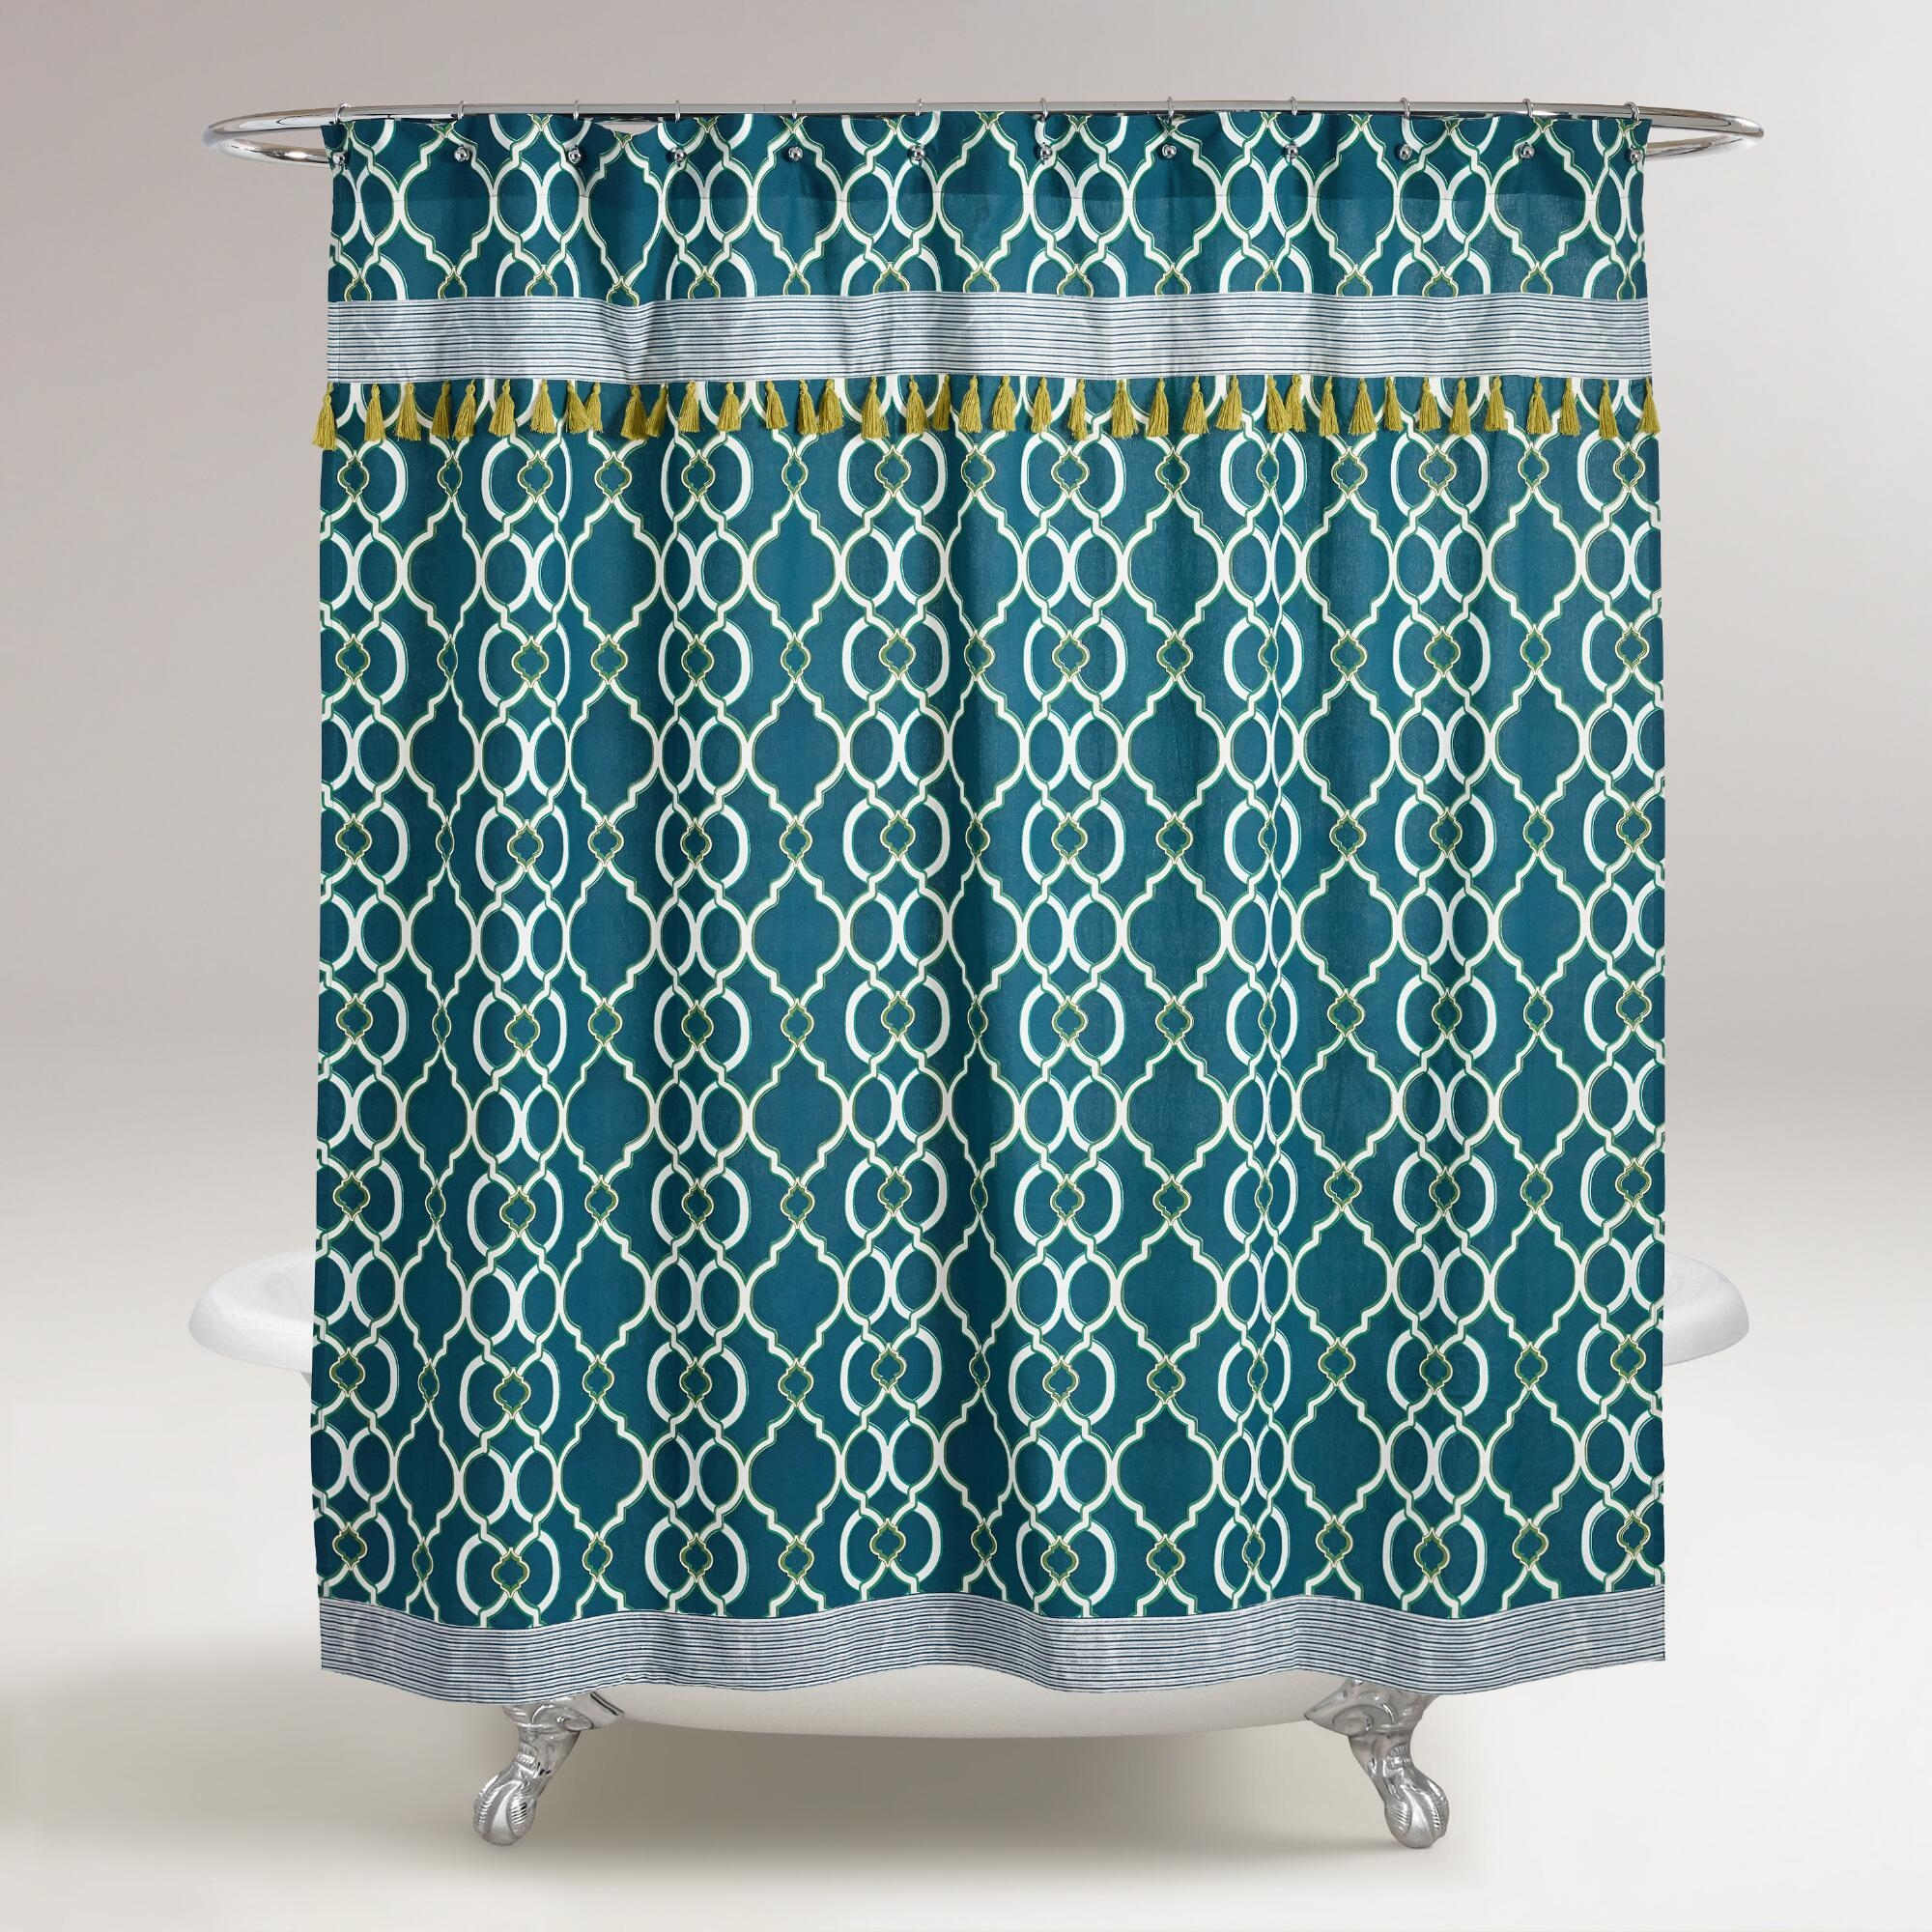 Ikat Shower Curtain World Market Shower Curtain Ideas inside size 2000 X 2000